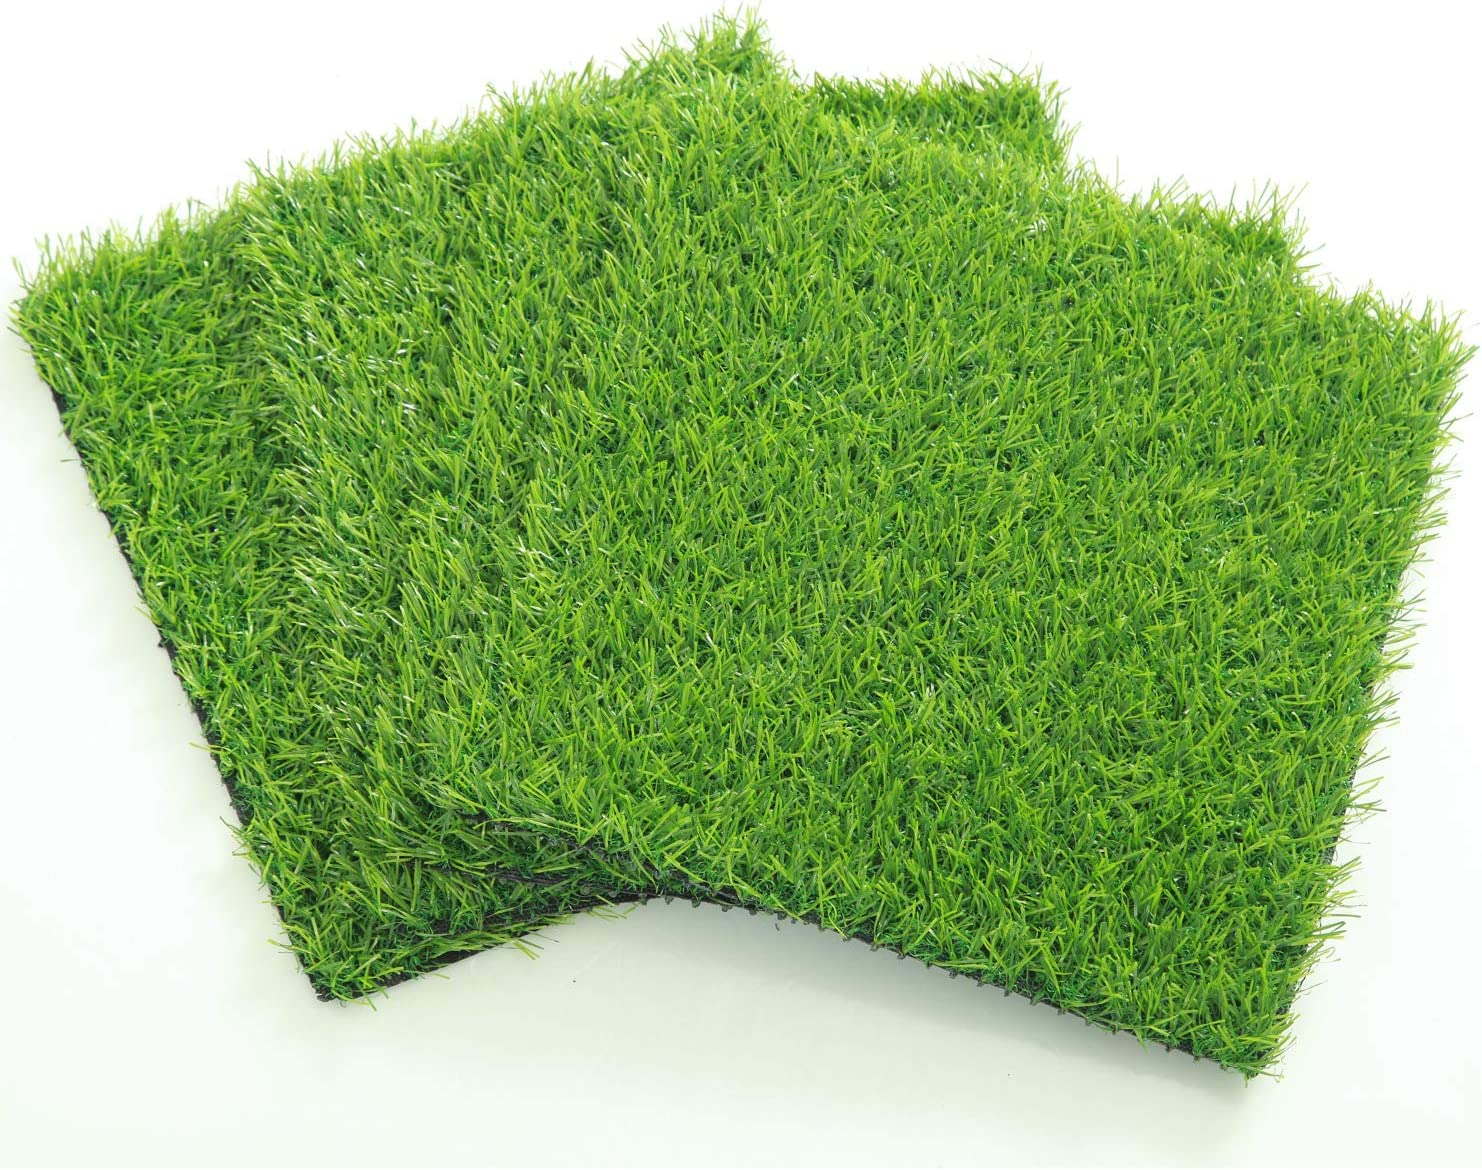 ECO MATRIX Artificial Grass Placemats Fake Grass Suqare Mat Tiles Small Synthetic Grass Patch Lawn Turf for Miniature Ornament Garden Dollhouse DIY Decoration ( 4 Pcs 12''x 12'')